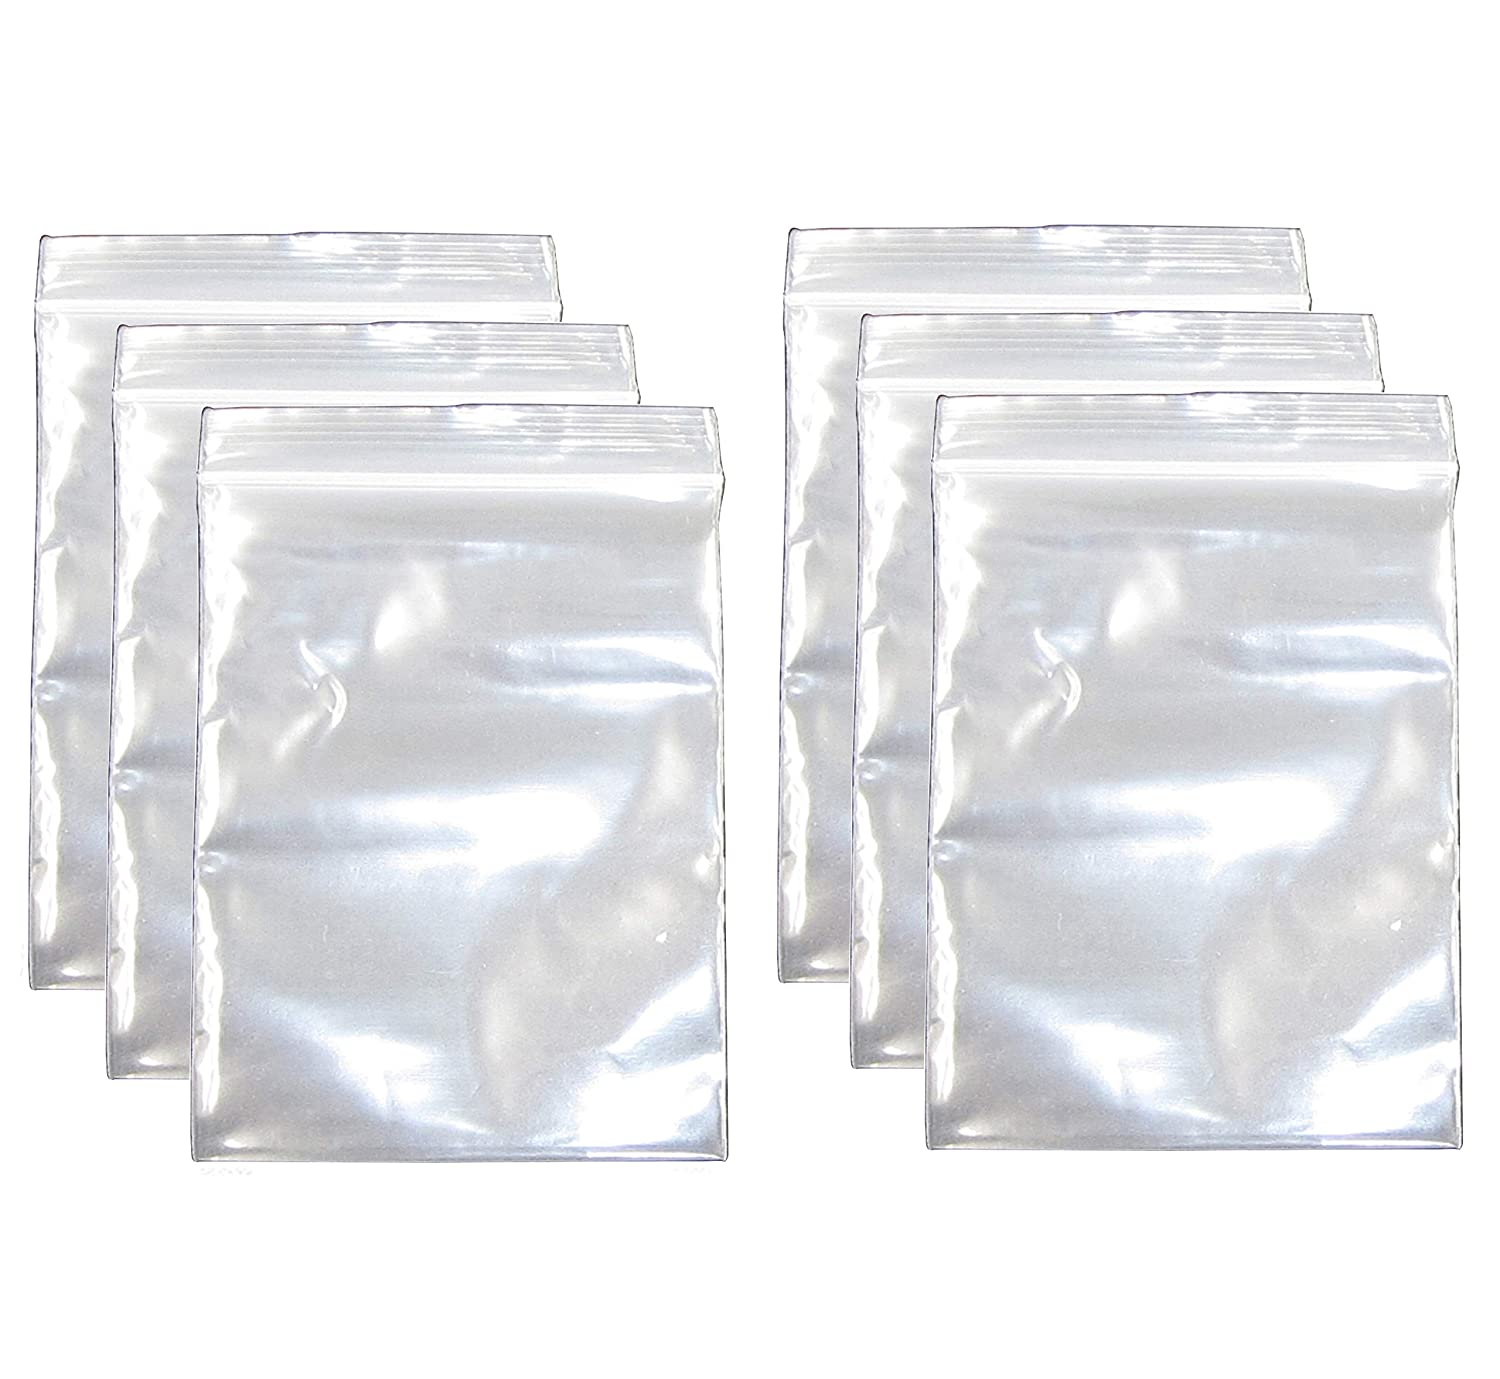 1.9x2.7 Inch, 600 Pack, Small Clear Resealable Zipper Poly Bags 2 Mil Thick, Food Grade Safe Reclosable Zipper Storage Plastic Bags for Jewelry,Candy,Beads etc JBingGG